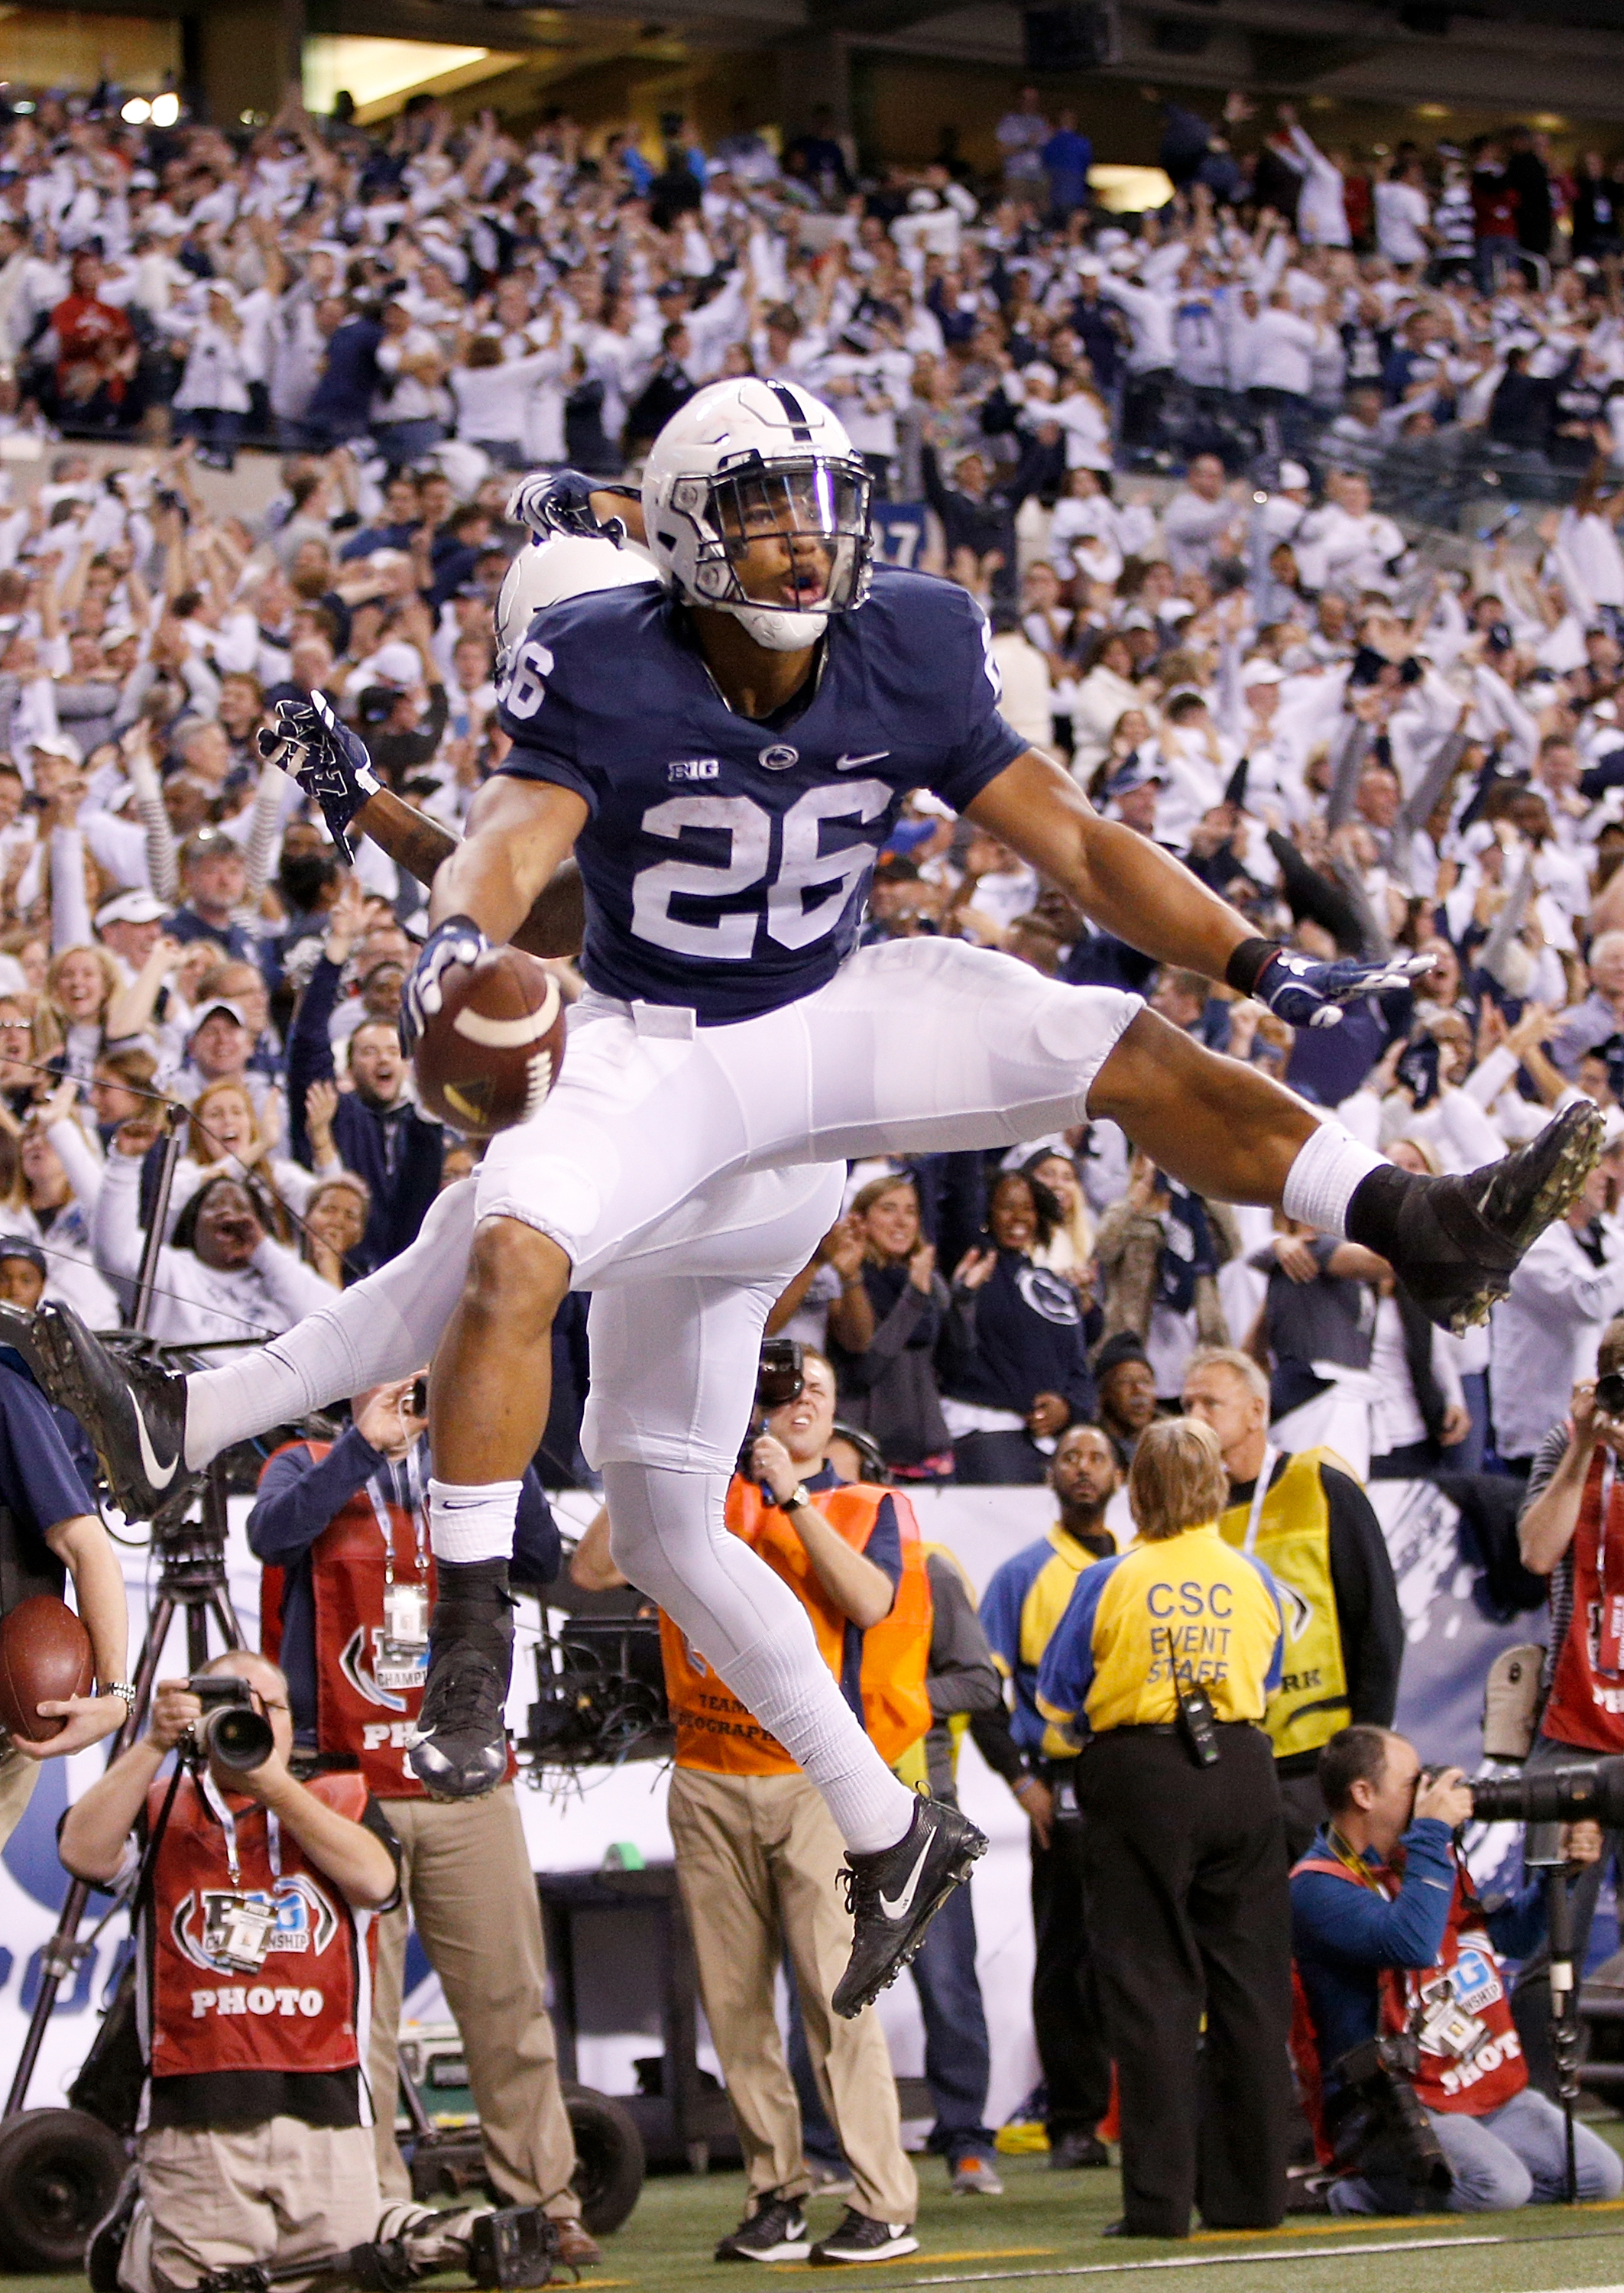 Saquon Barkley and the Penn State Nittany Lions came back to Earth when the College Football Playoff spots were announced. (Getty Images)